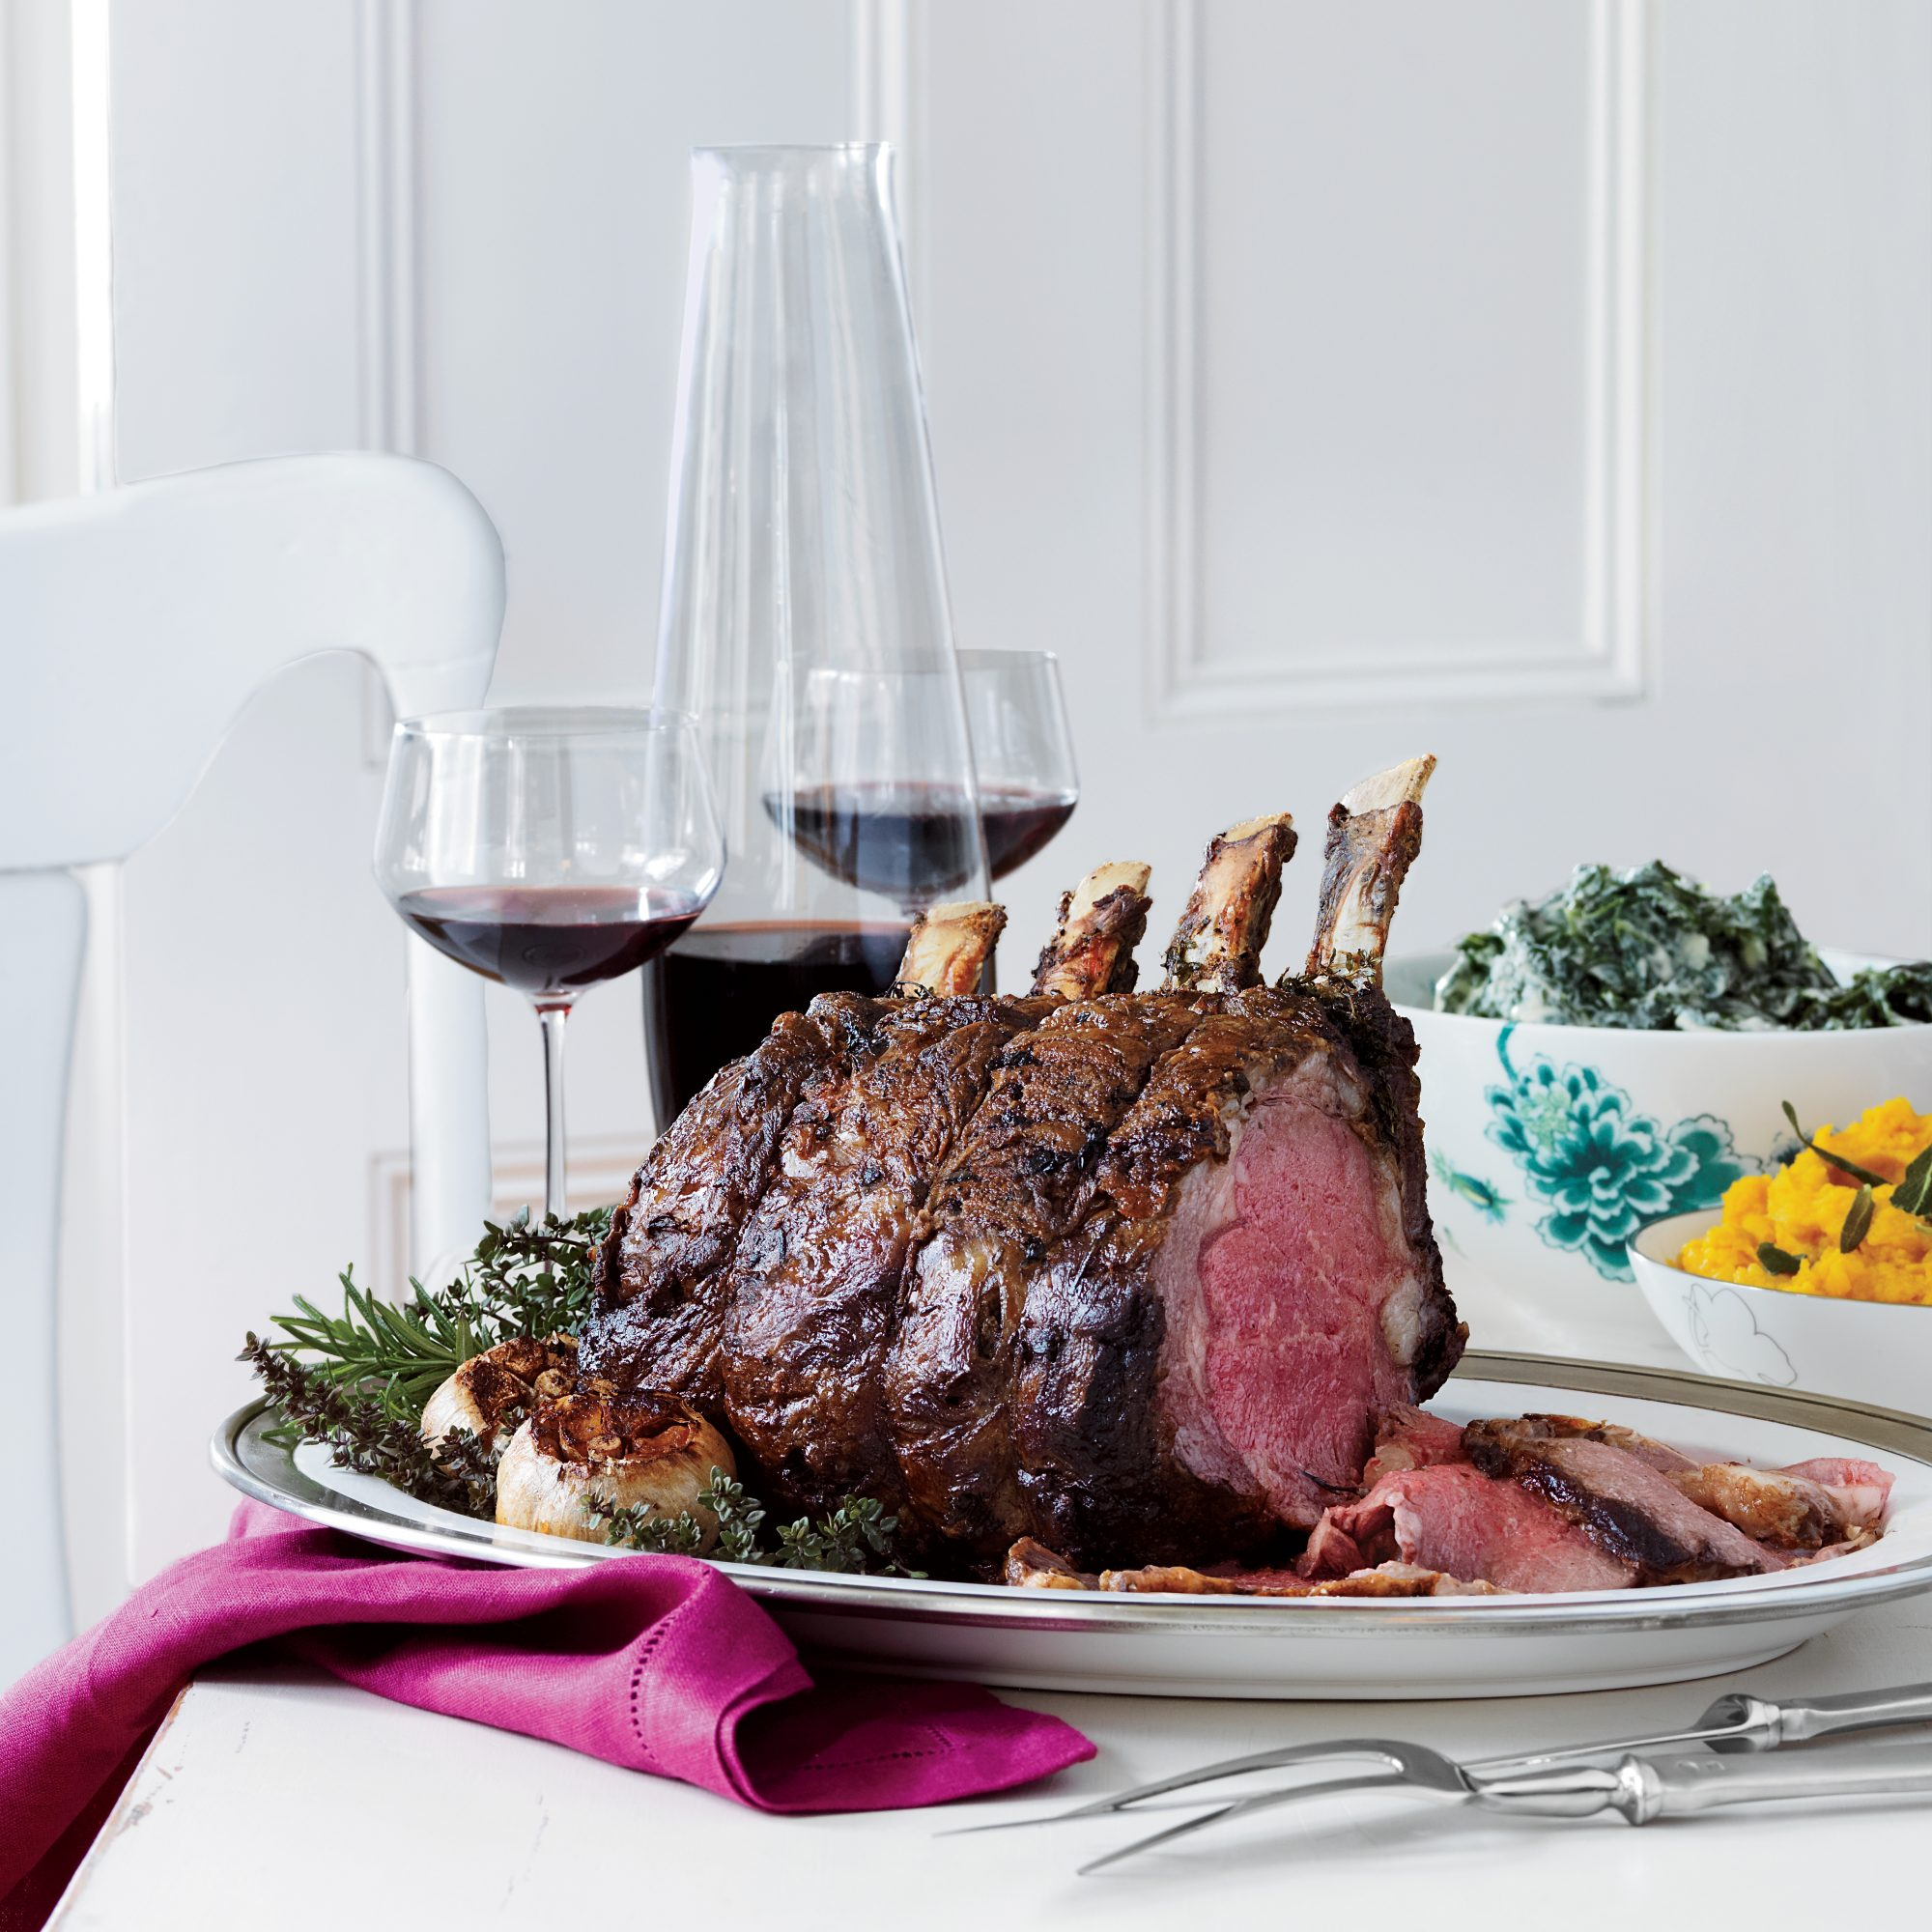 Prime Rib Roast with Horseradish Cream